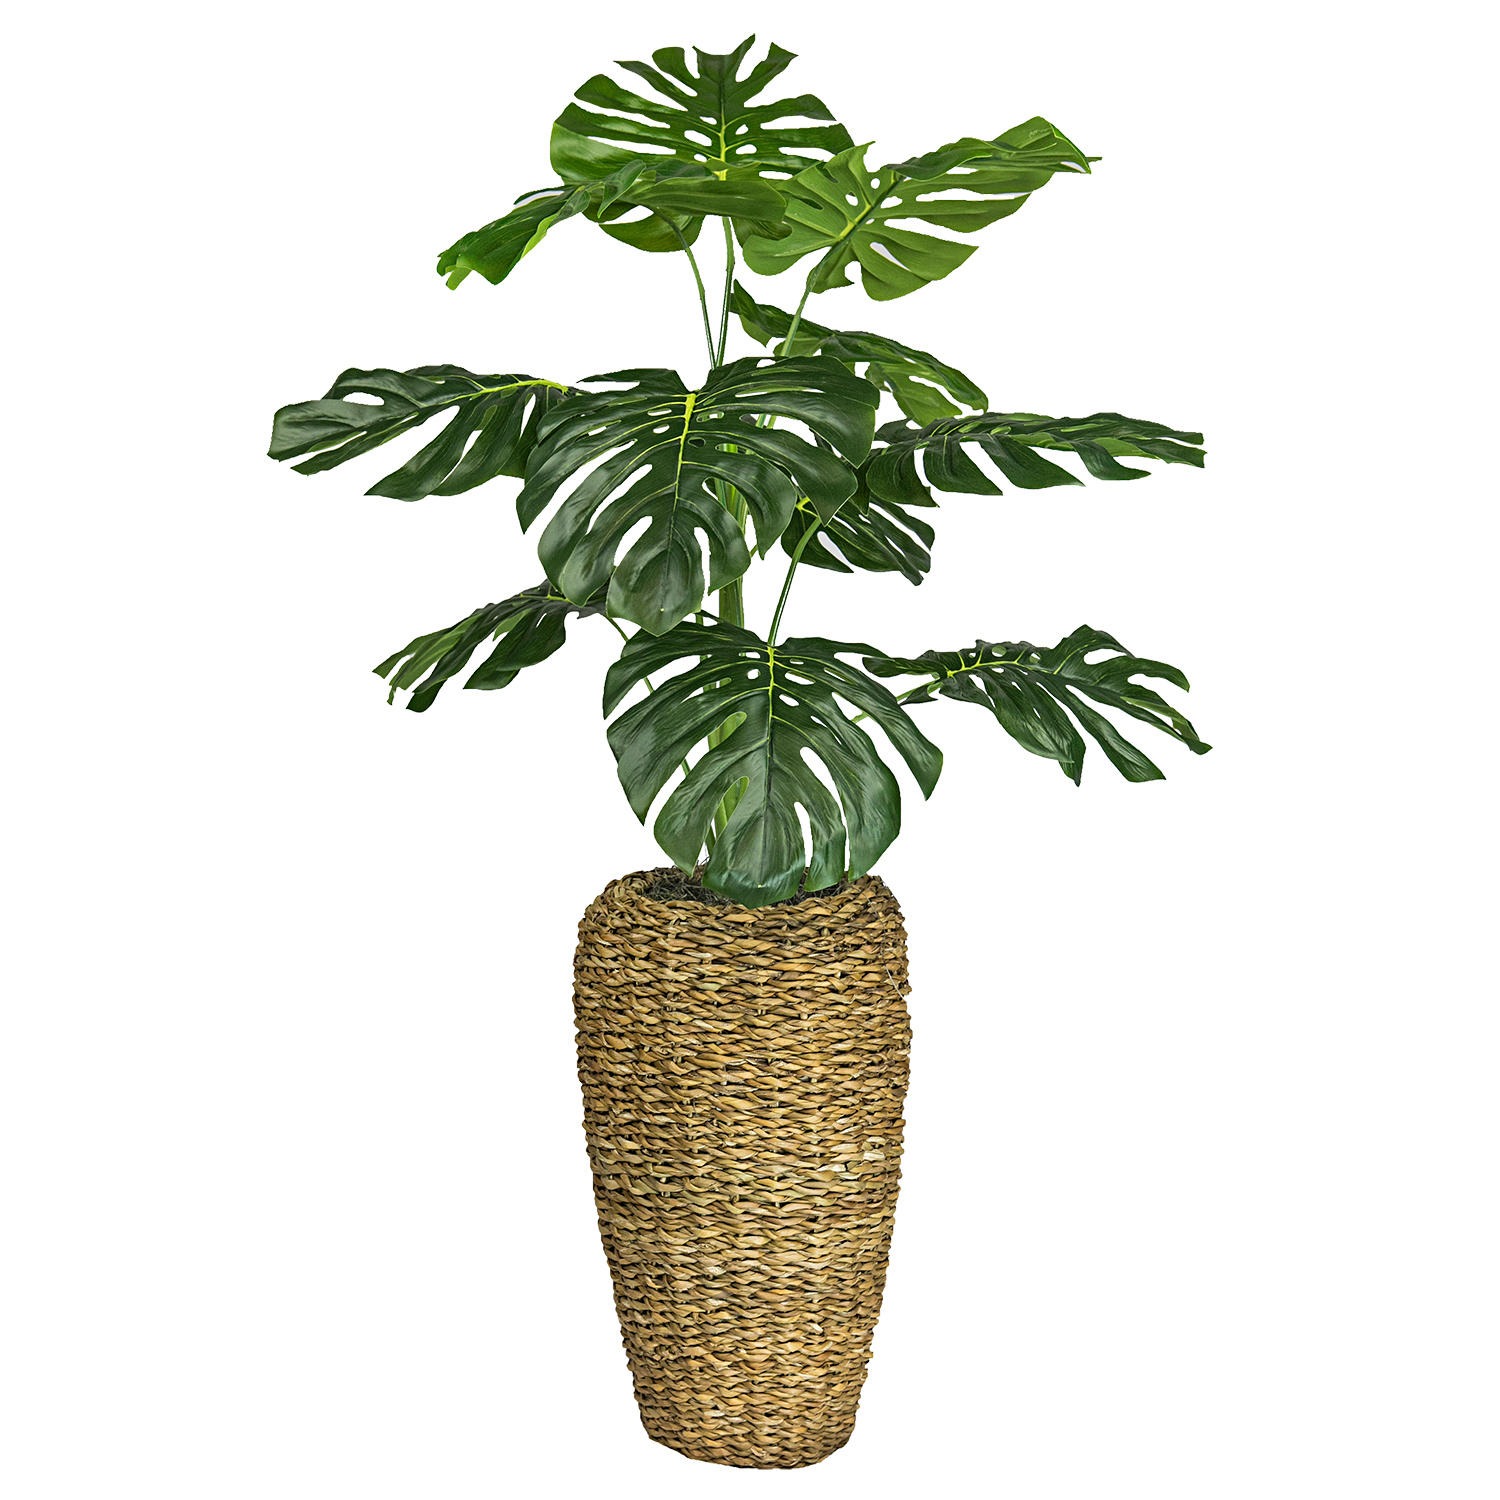 LCG Sales 4' Monstera in Handwoven Urn-Style Basket